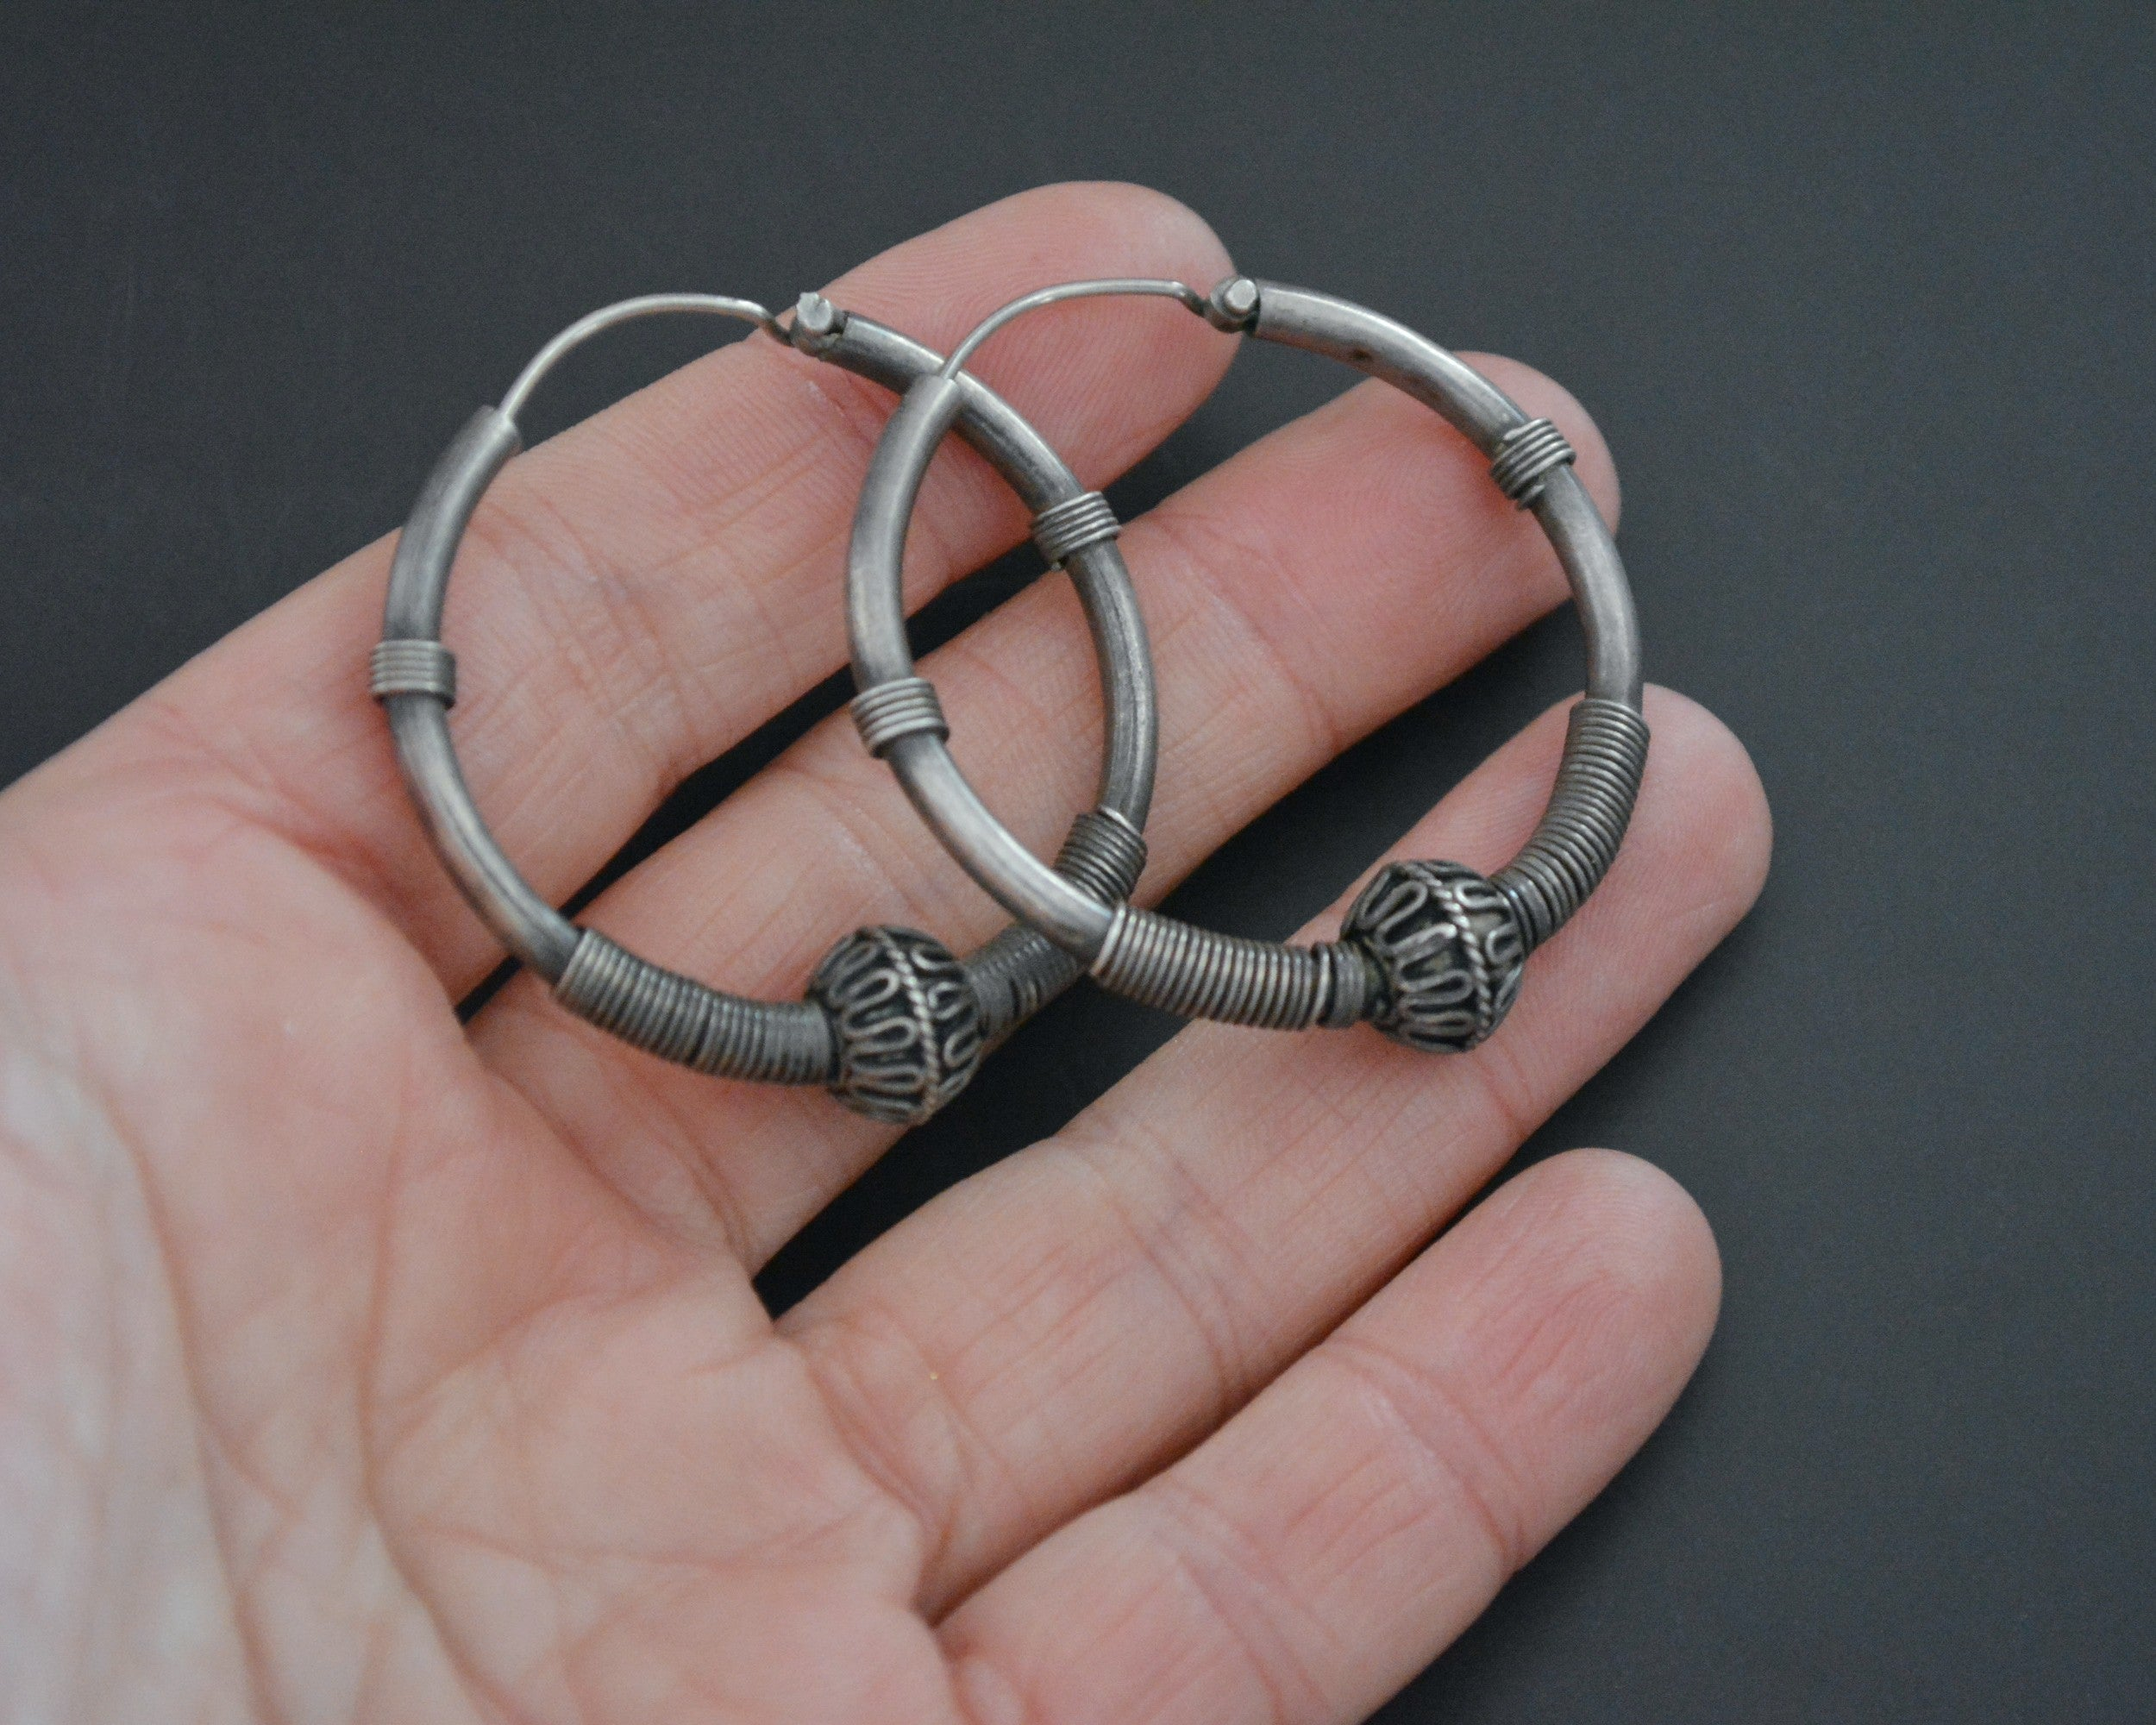 Ethnic Bali Hoop Earrings with Wire Work and Bead - Medium/Large